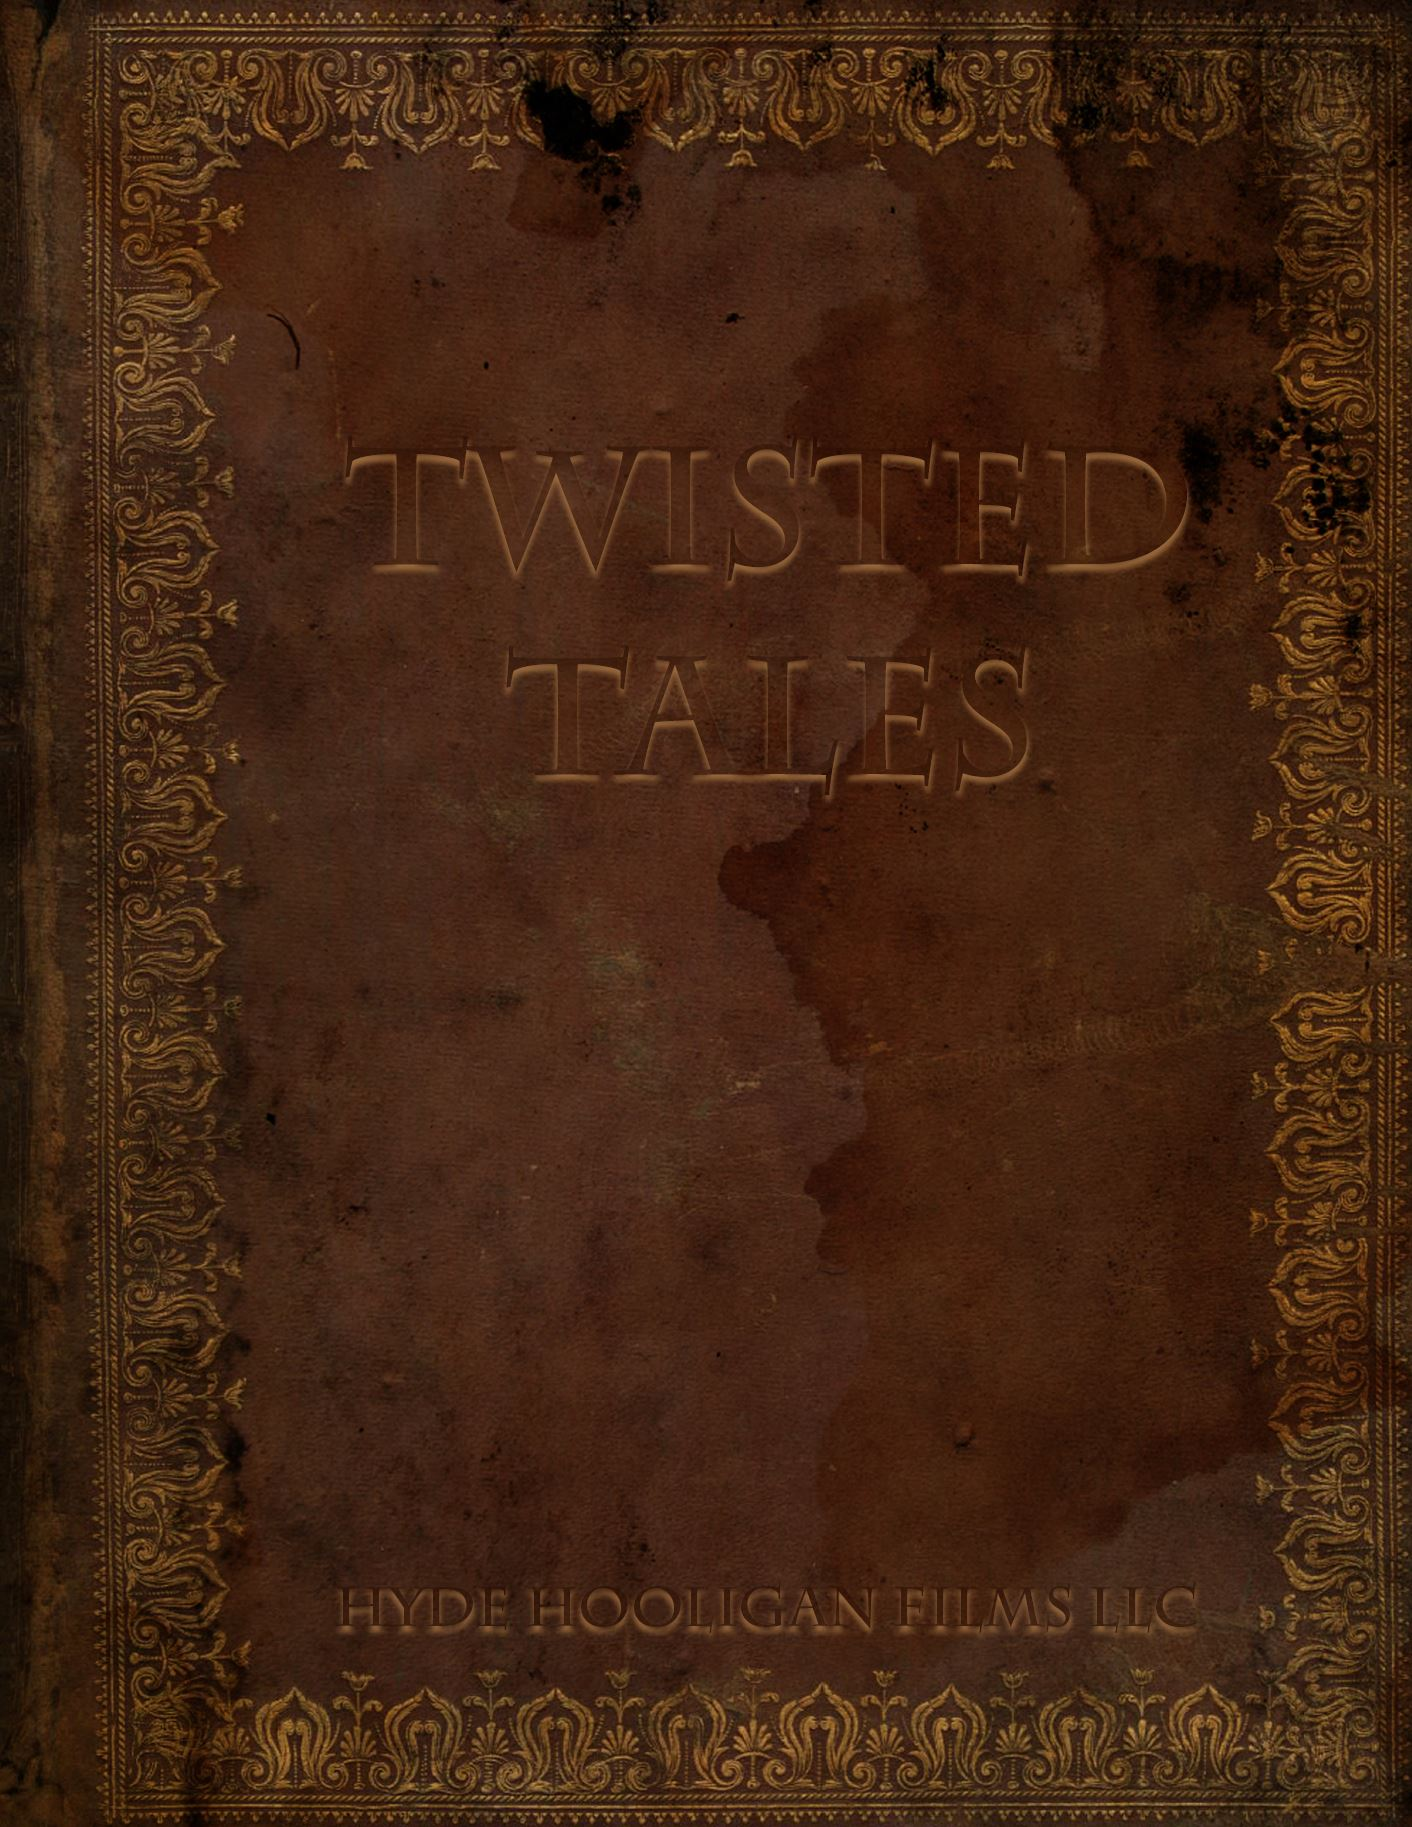 HHF PRESENTS: TWISTED TALES